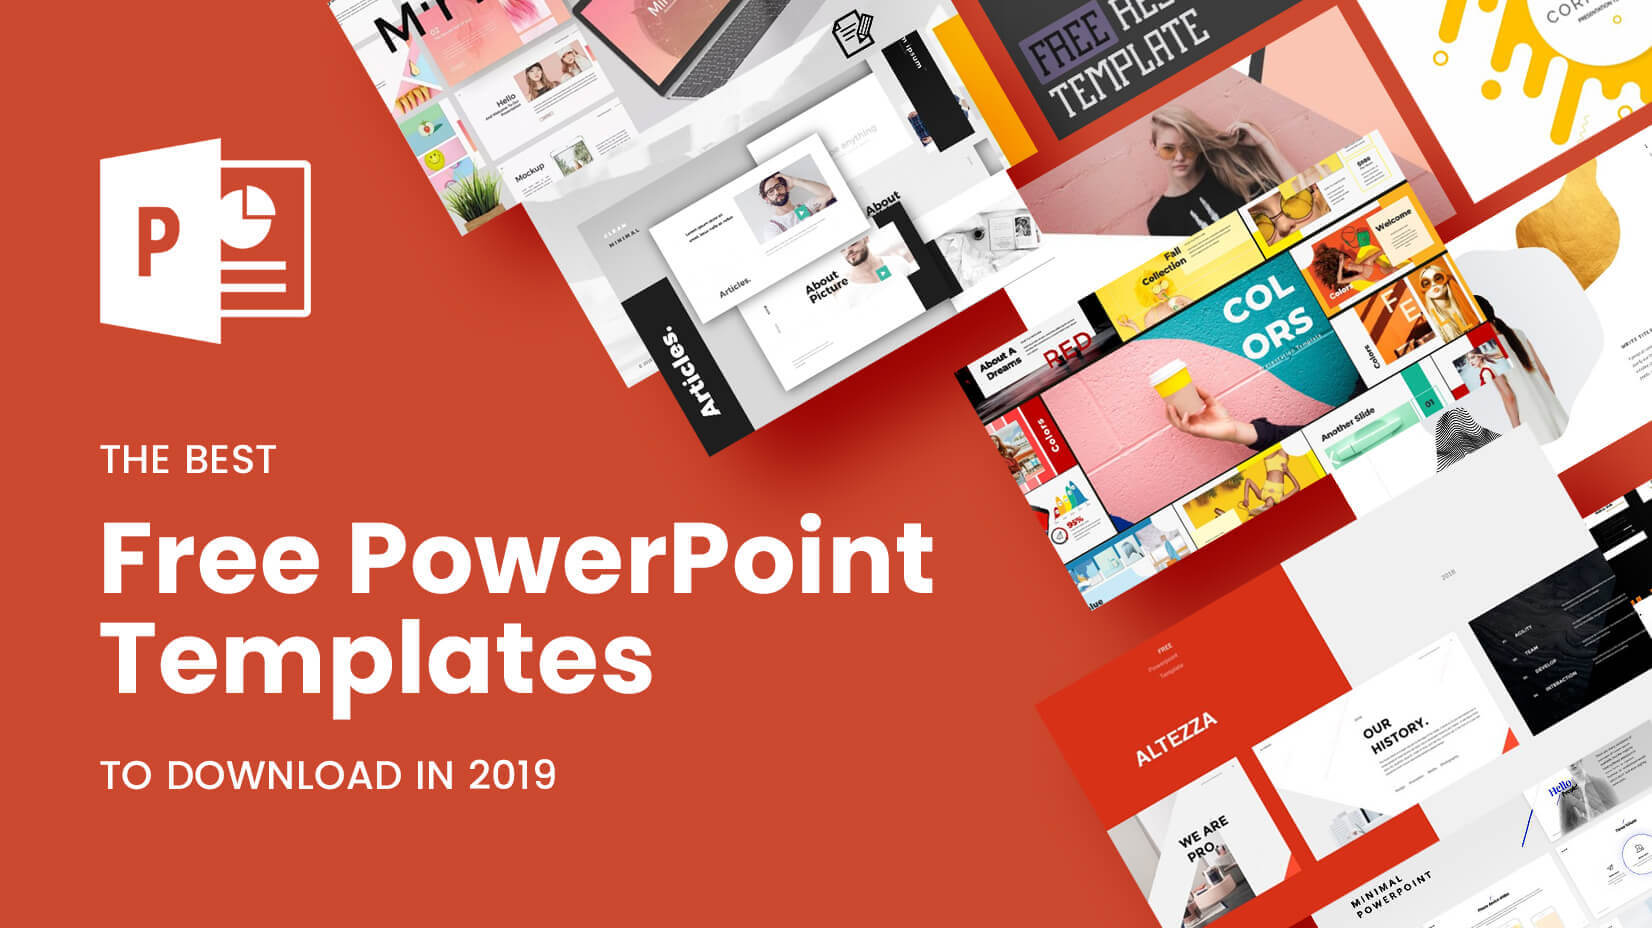 The Best Free Powerpoint Templates To Download In 2019 Pertaining To Fun Powerpoint Templates Free Download